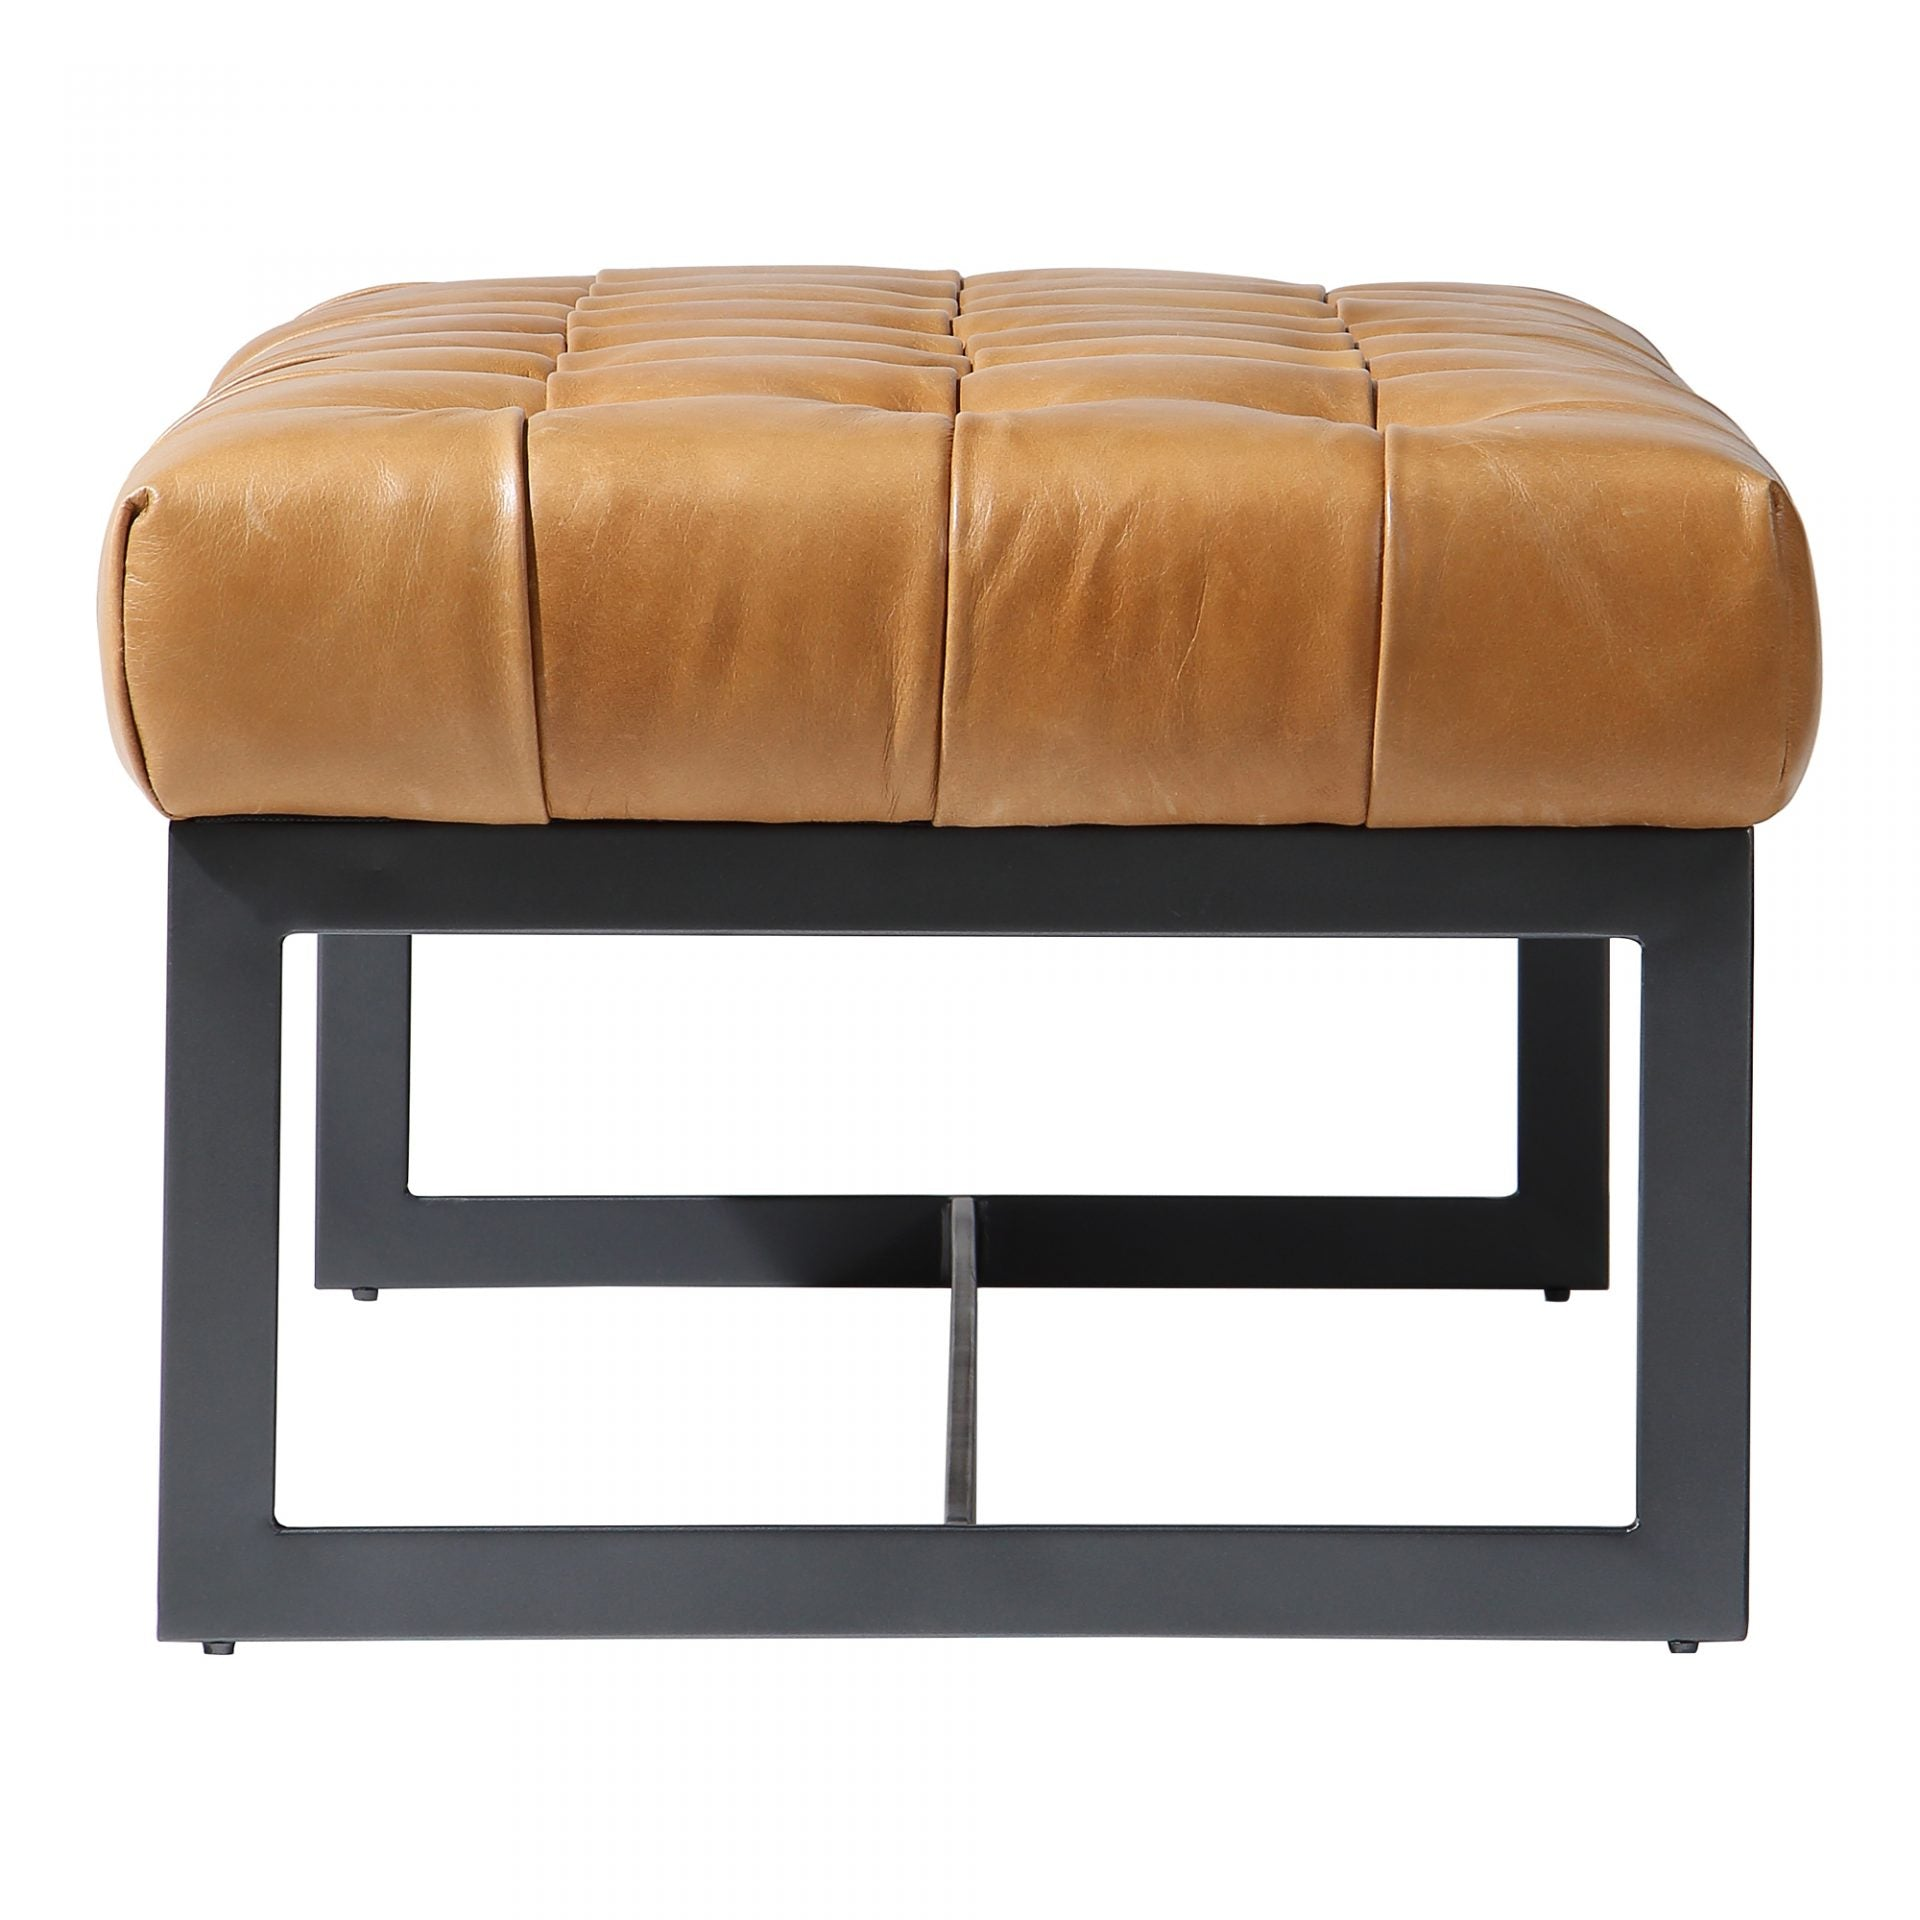 Wyatt Leather Bench